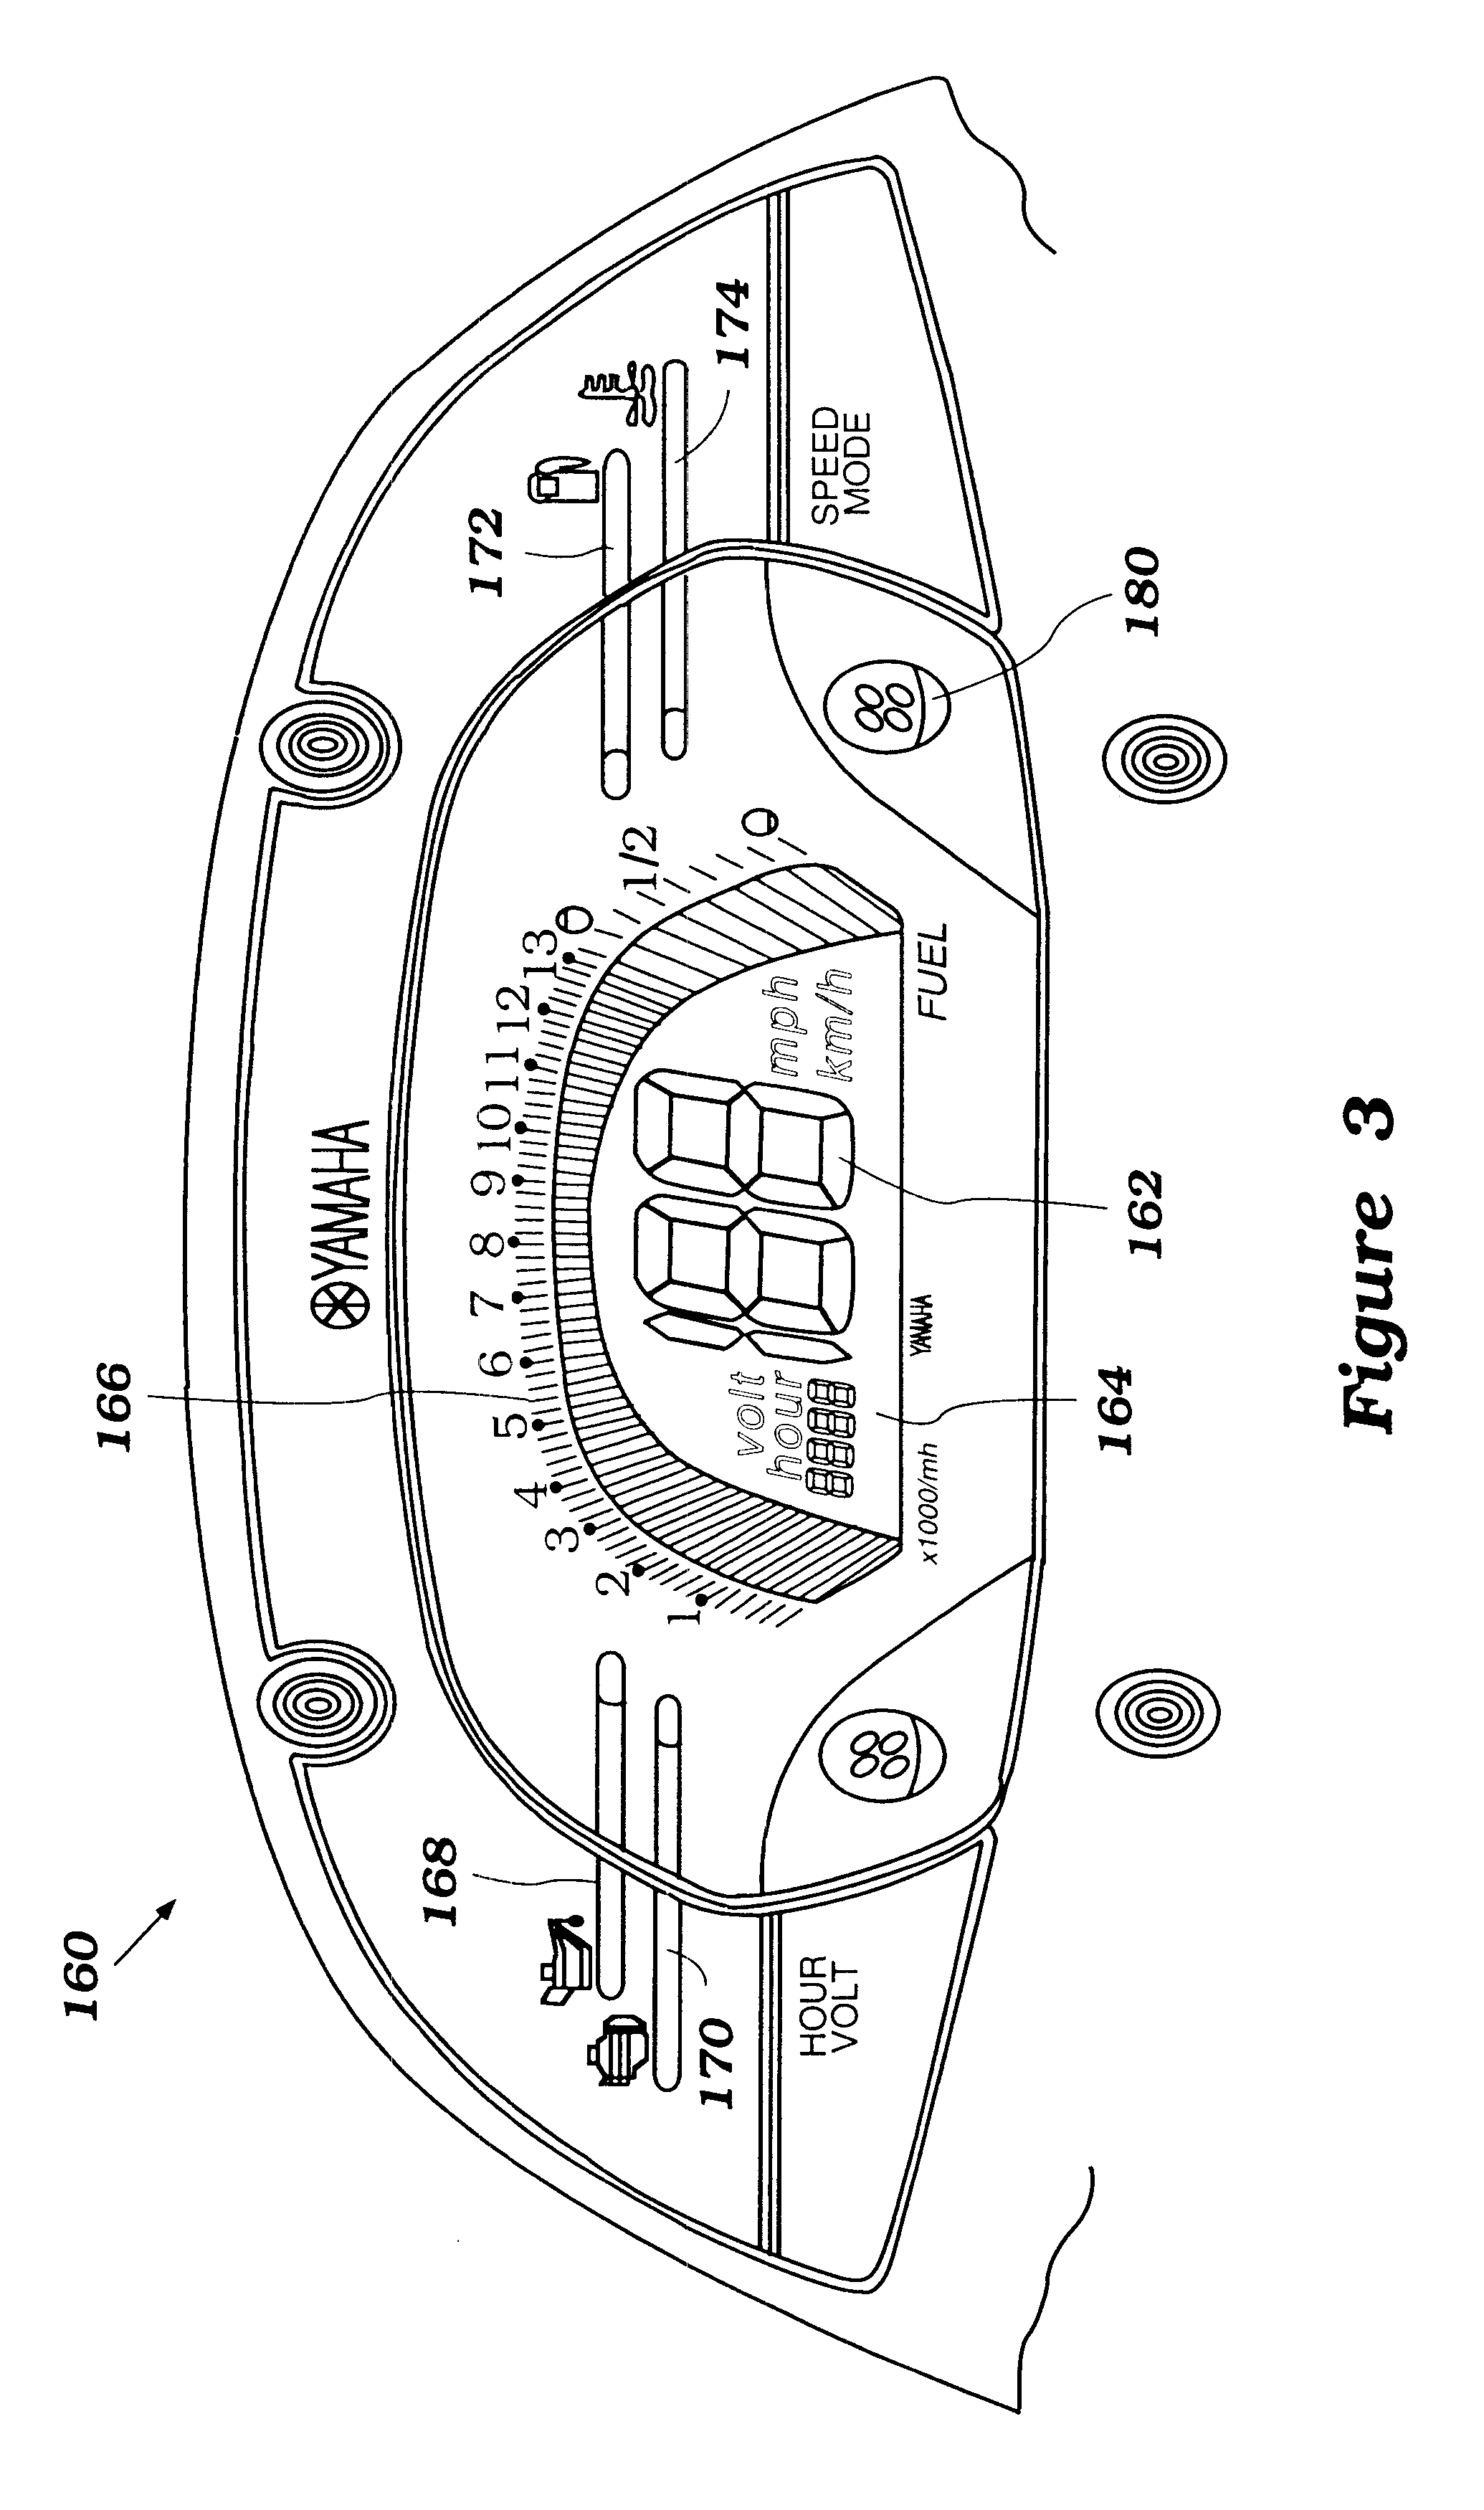 Patent US6582261 - Anti-theft device for water vehicle - Google Patents